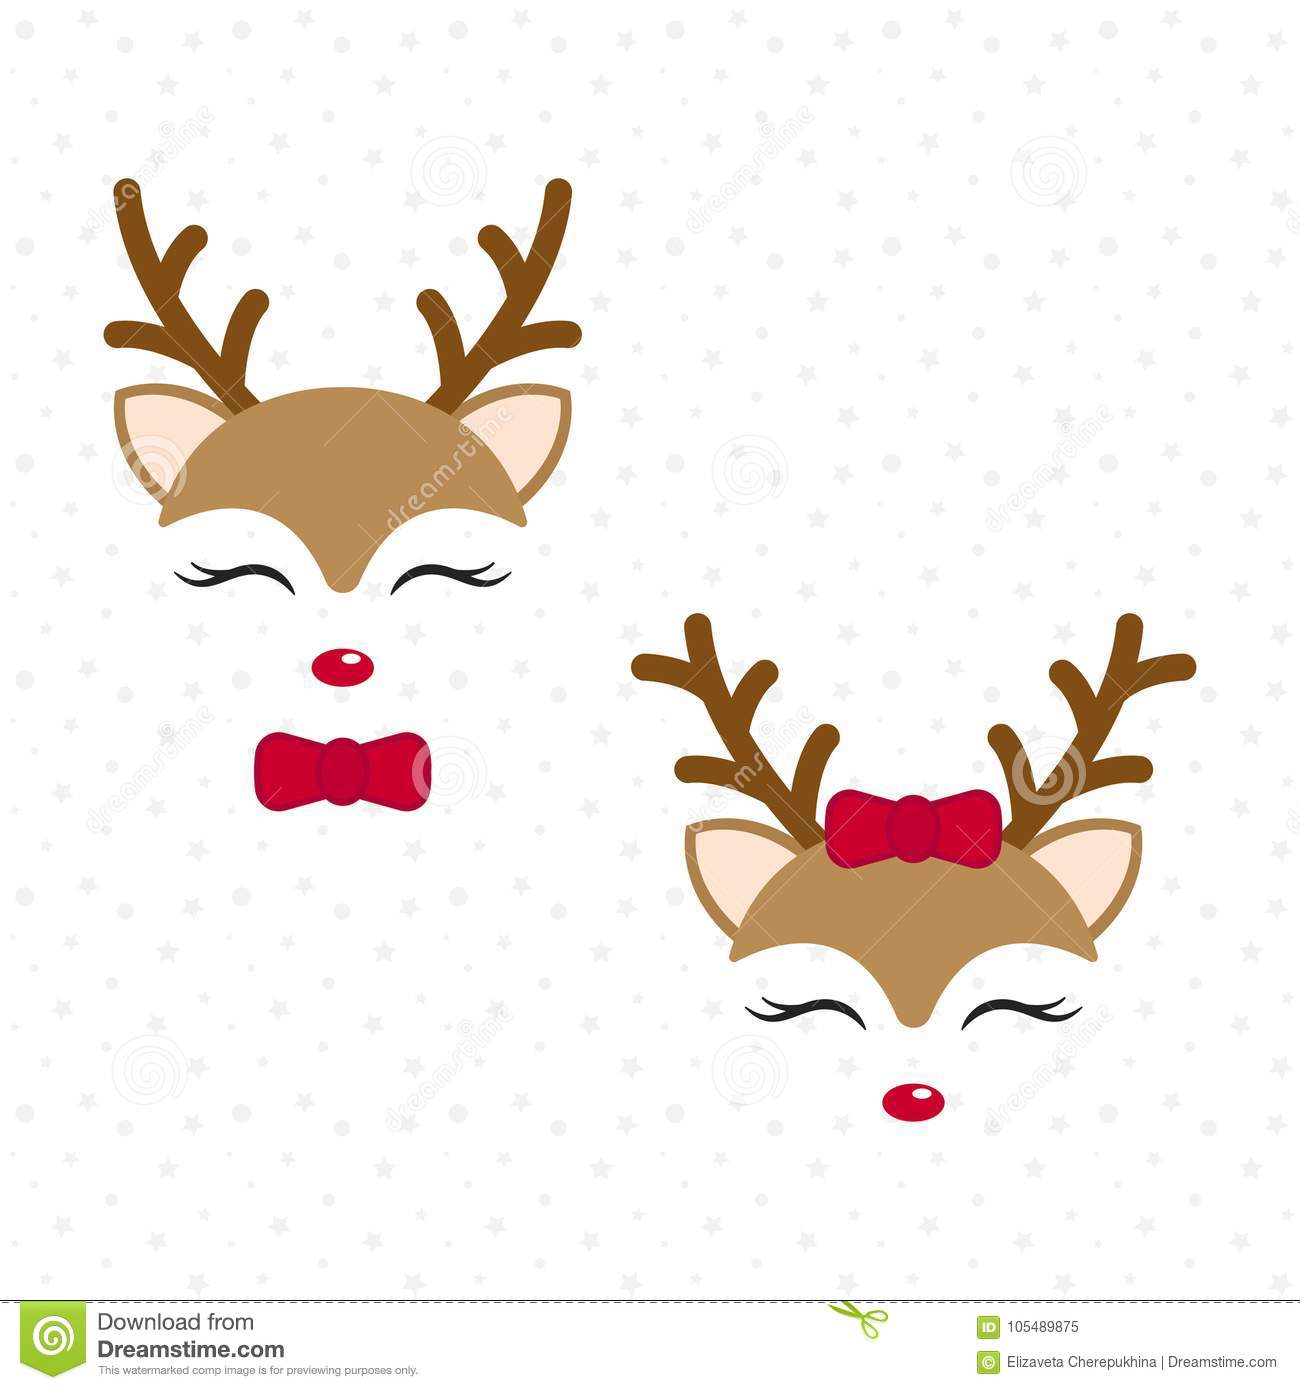 Cute reindeer. Baby deer. Merry Christmas cartoon character. Boy with bow tie and girl with red bow.